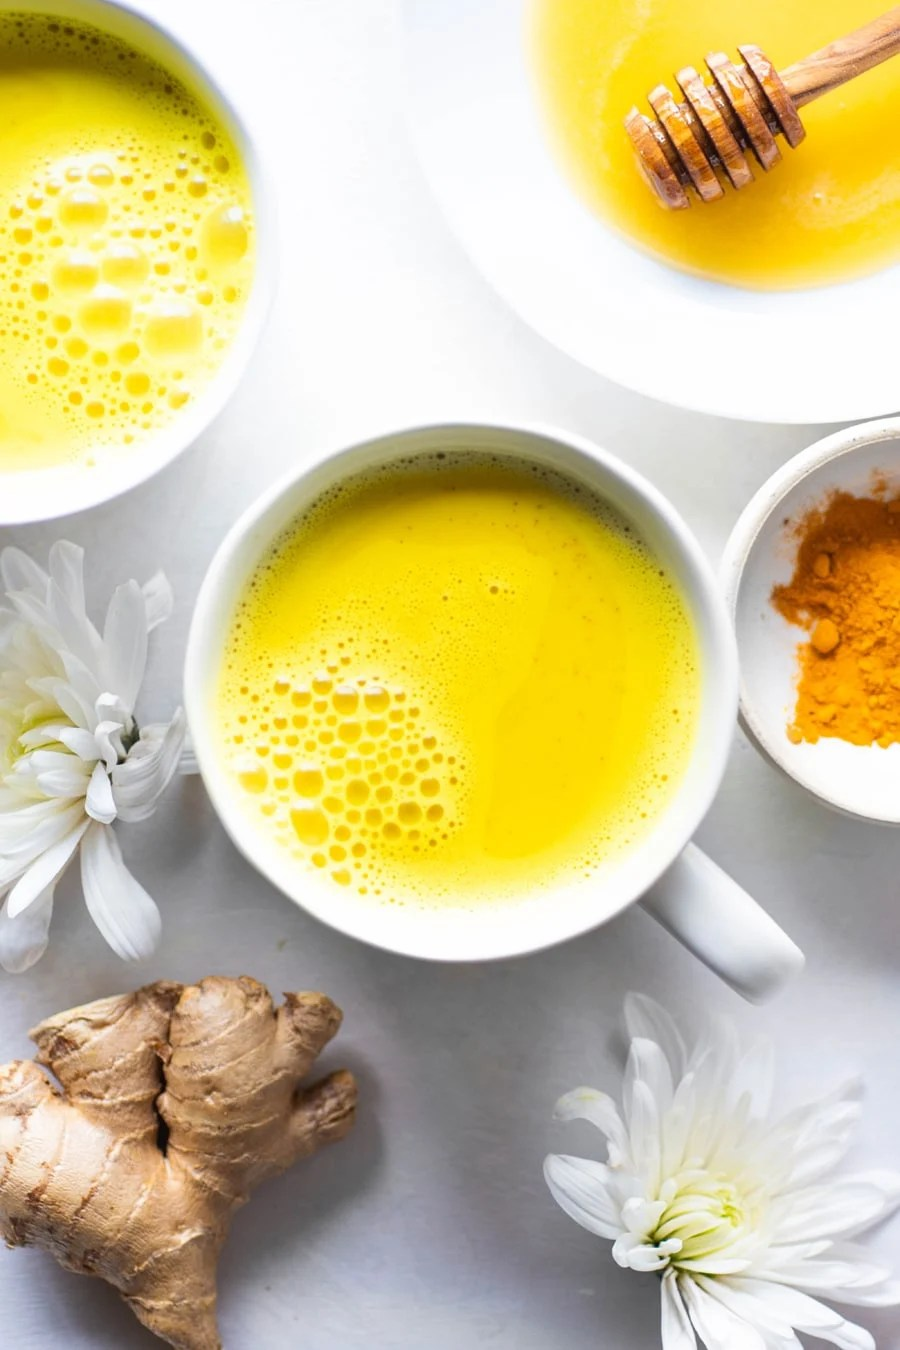 Bright yellow golden milk latte in a white mug with white flowers and fresh ginger